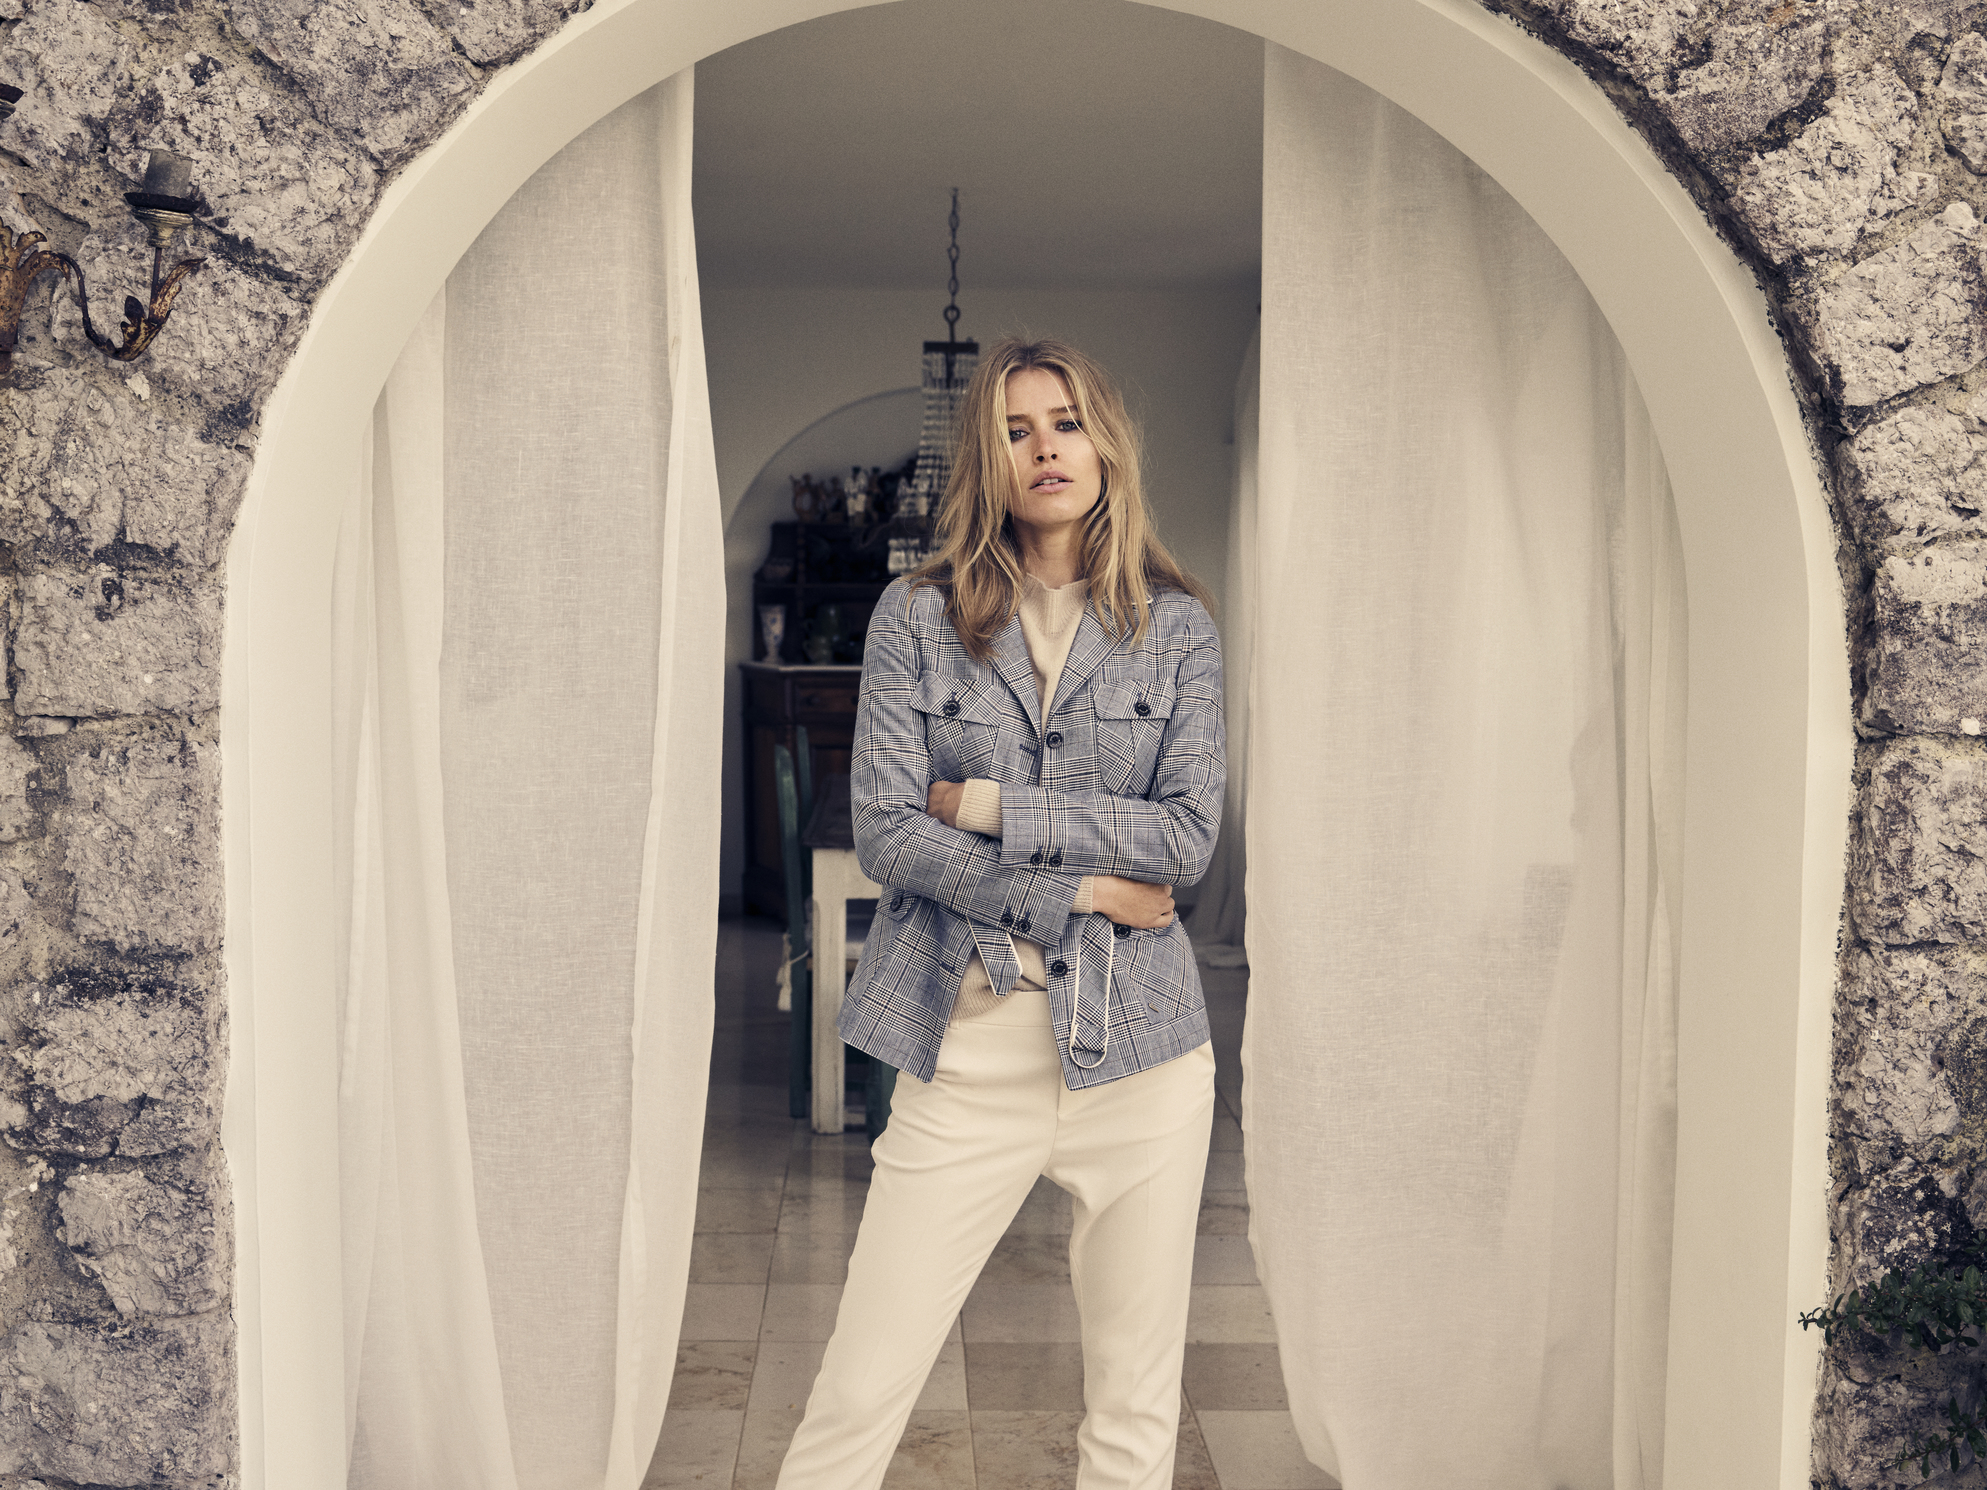 131170_Sansa_Cashmere_Knit_-_132620_Riva_Chester_Jacket_-_123590_Gerry_Twiggy_Pant_1